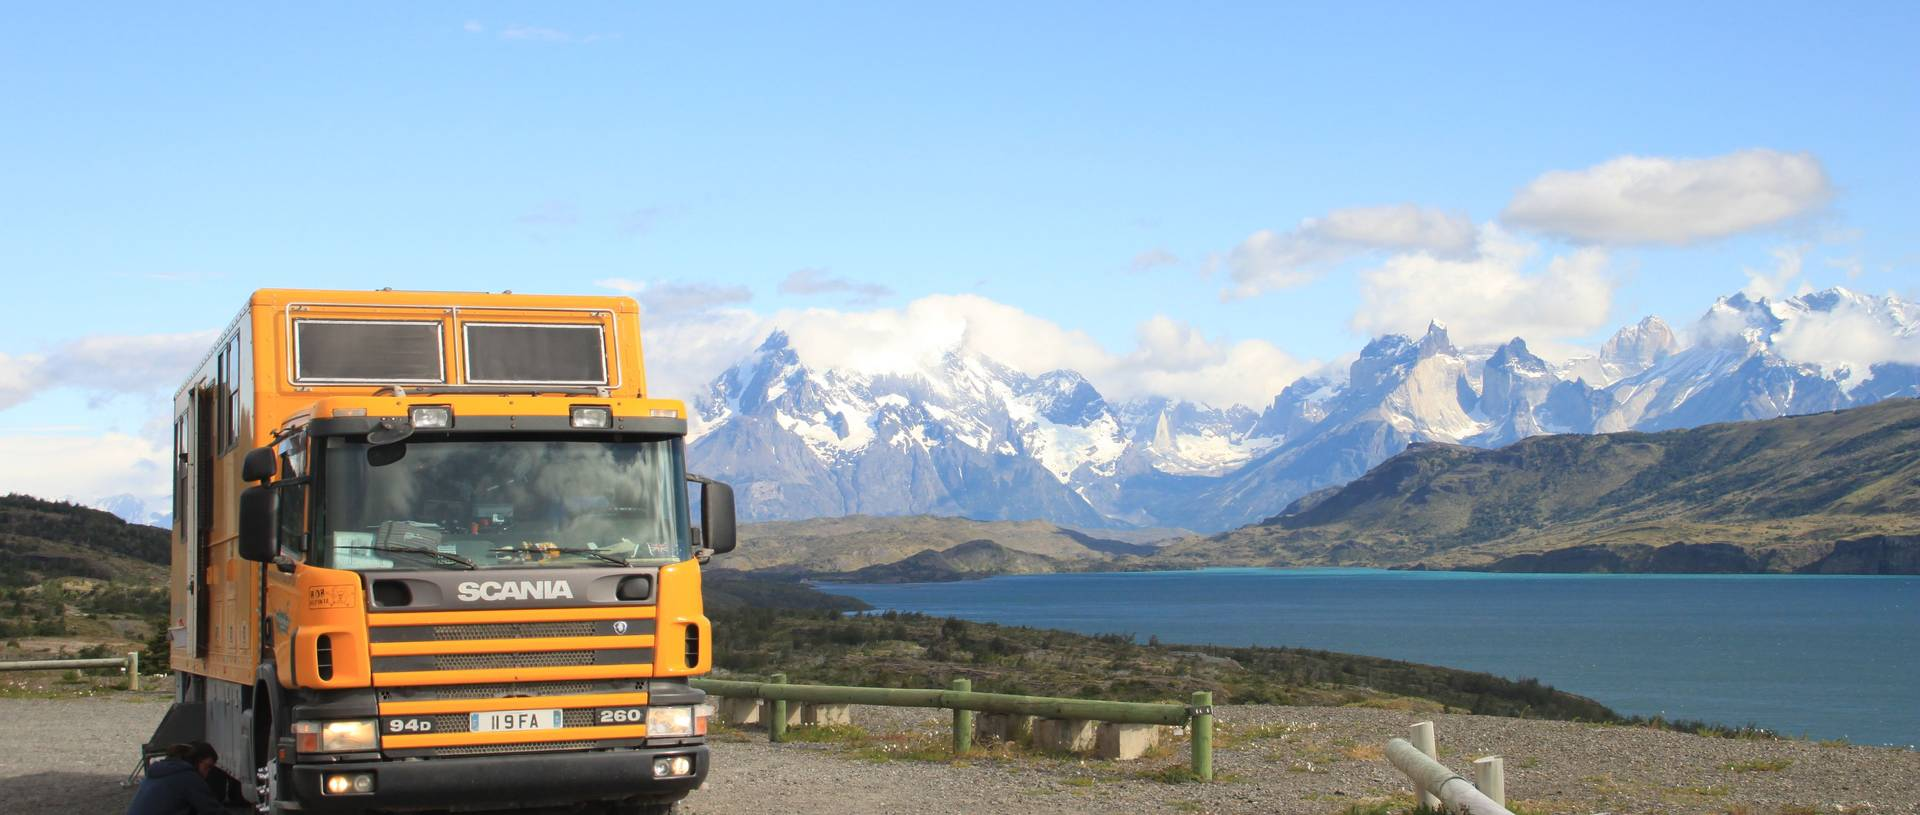 Pumping Tires In Torres Del Paine National Park